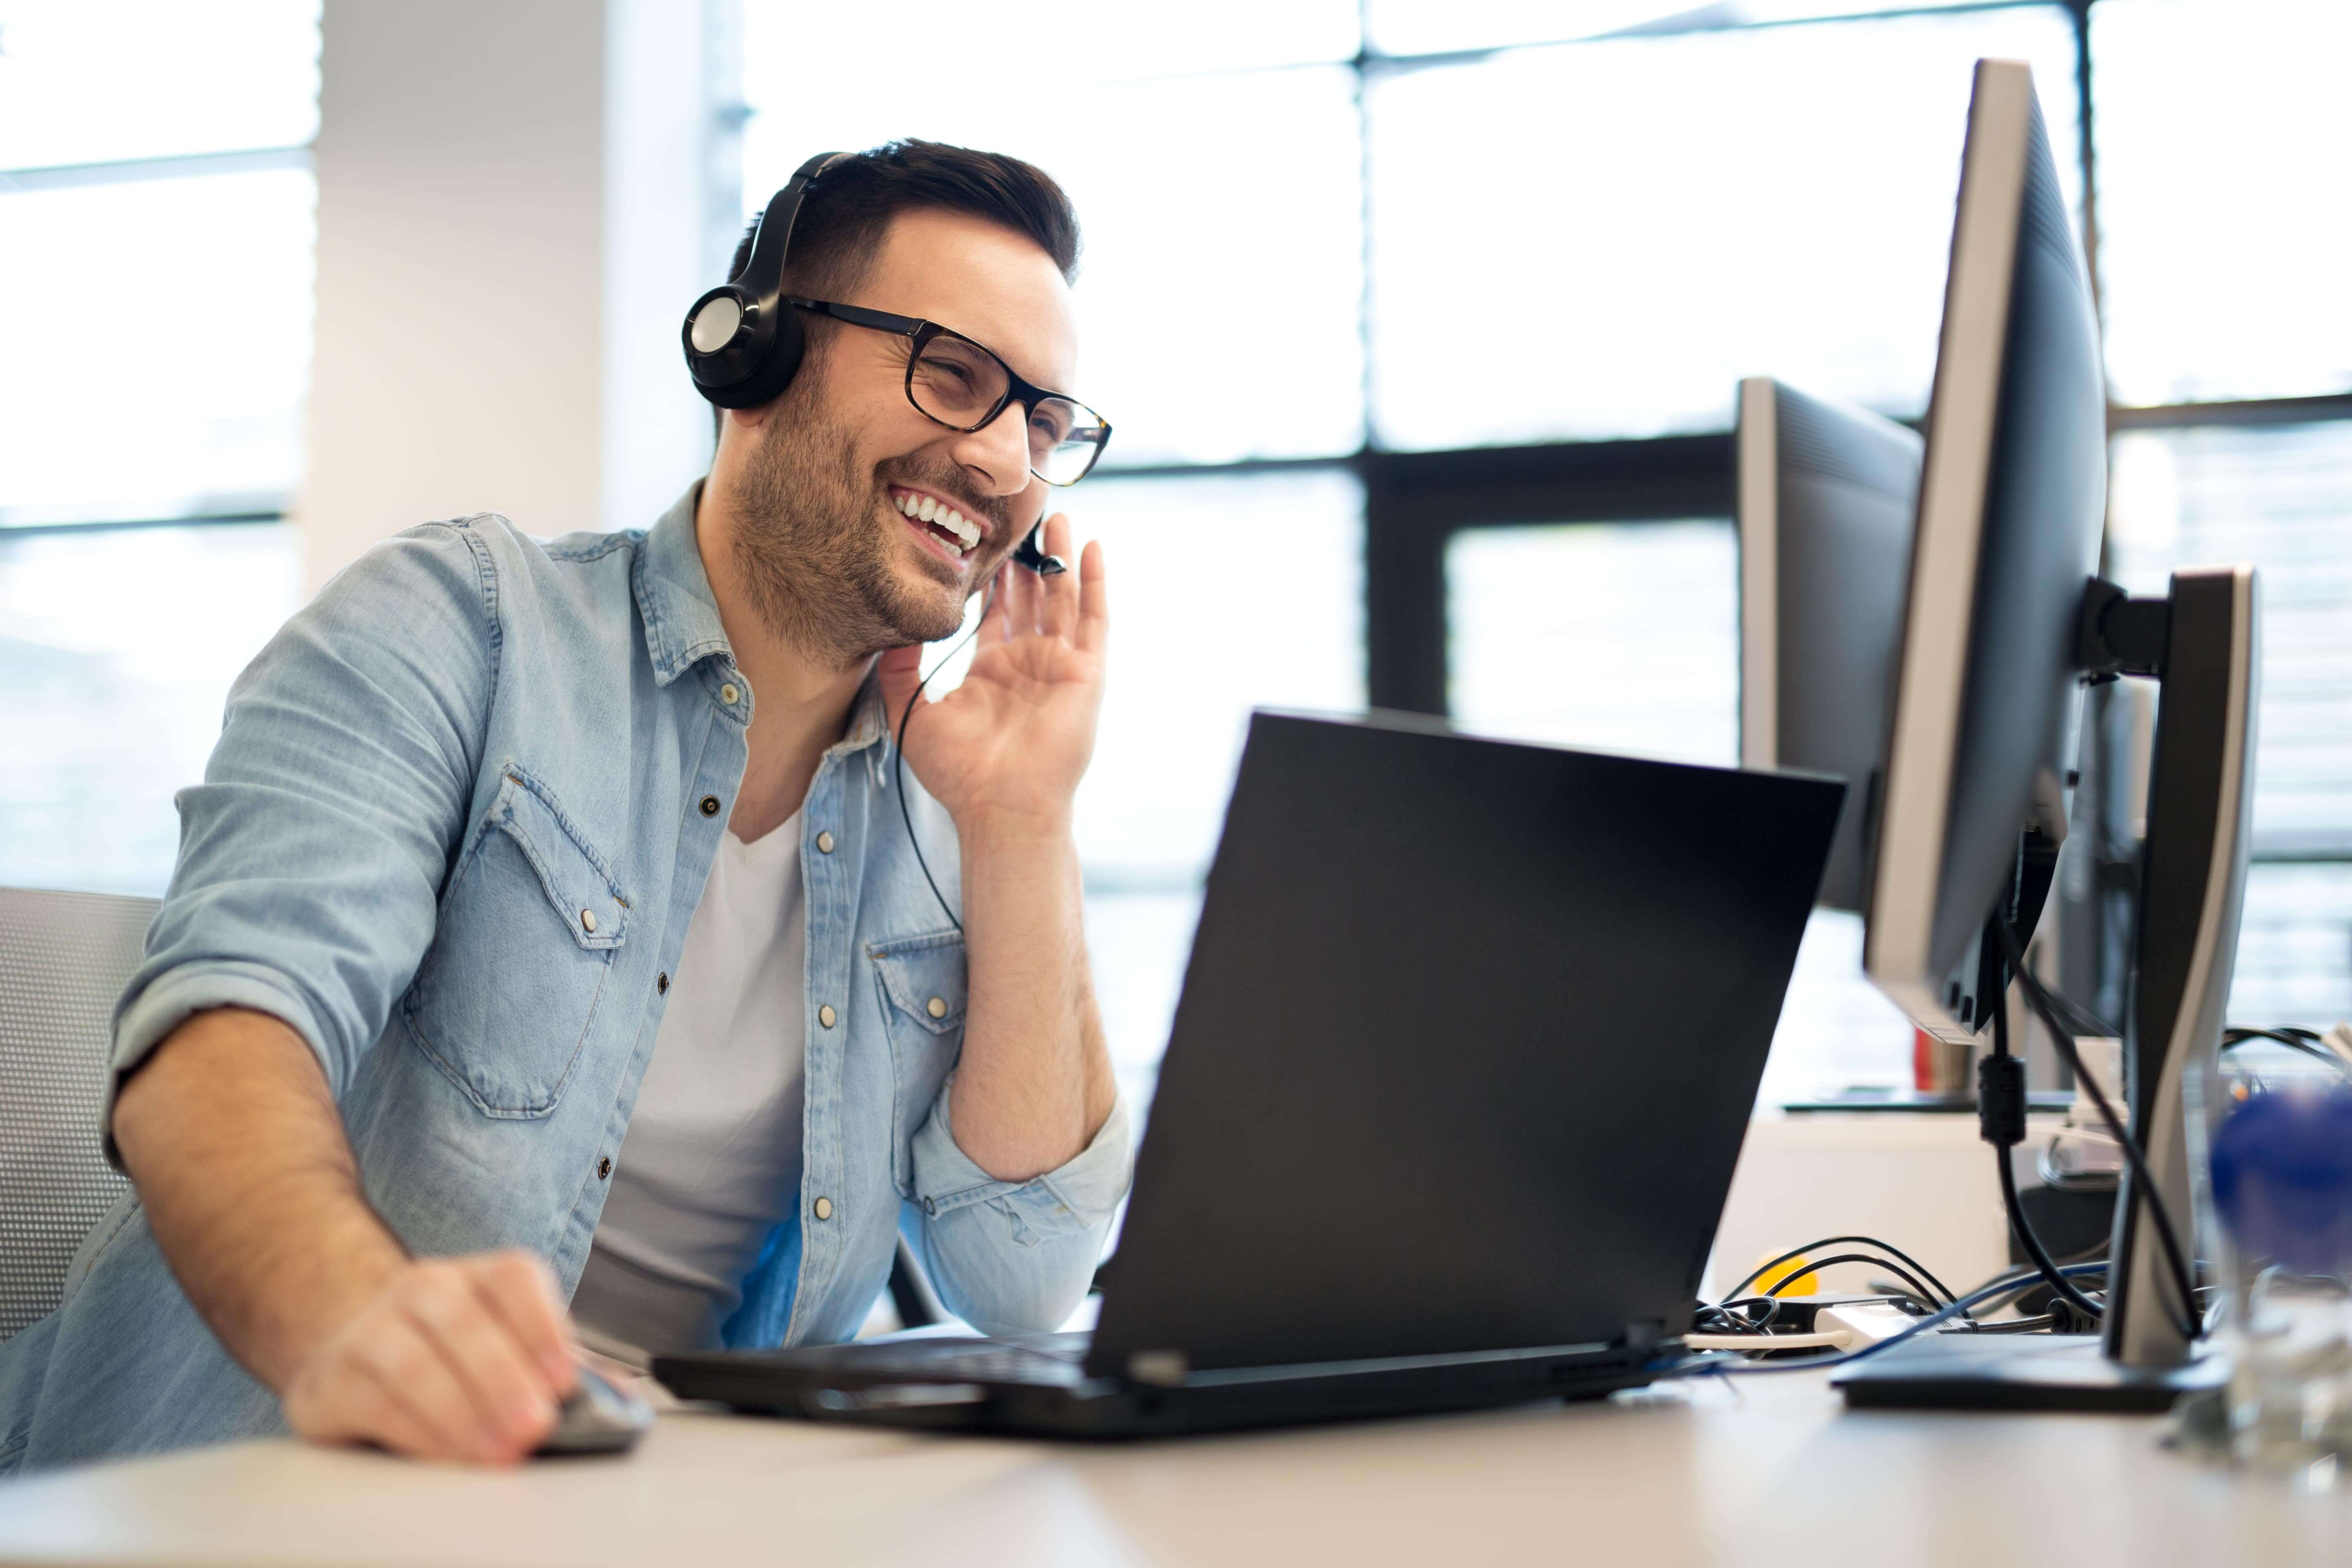 Outsourced IT Support - Providing Quick ResolutionstoTechnologyIssues